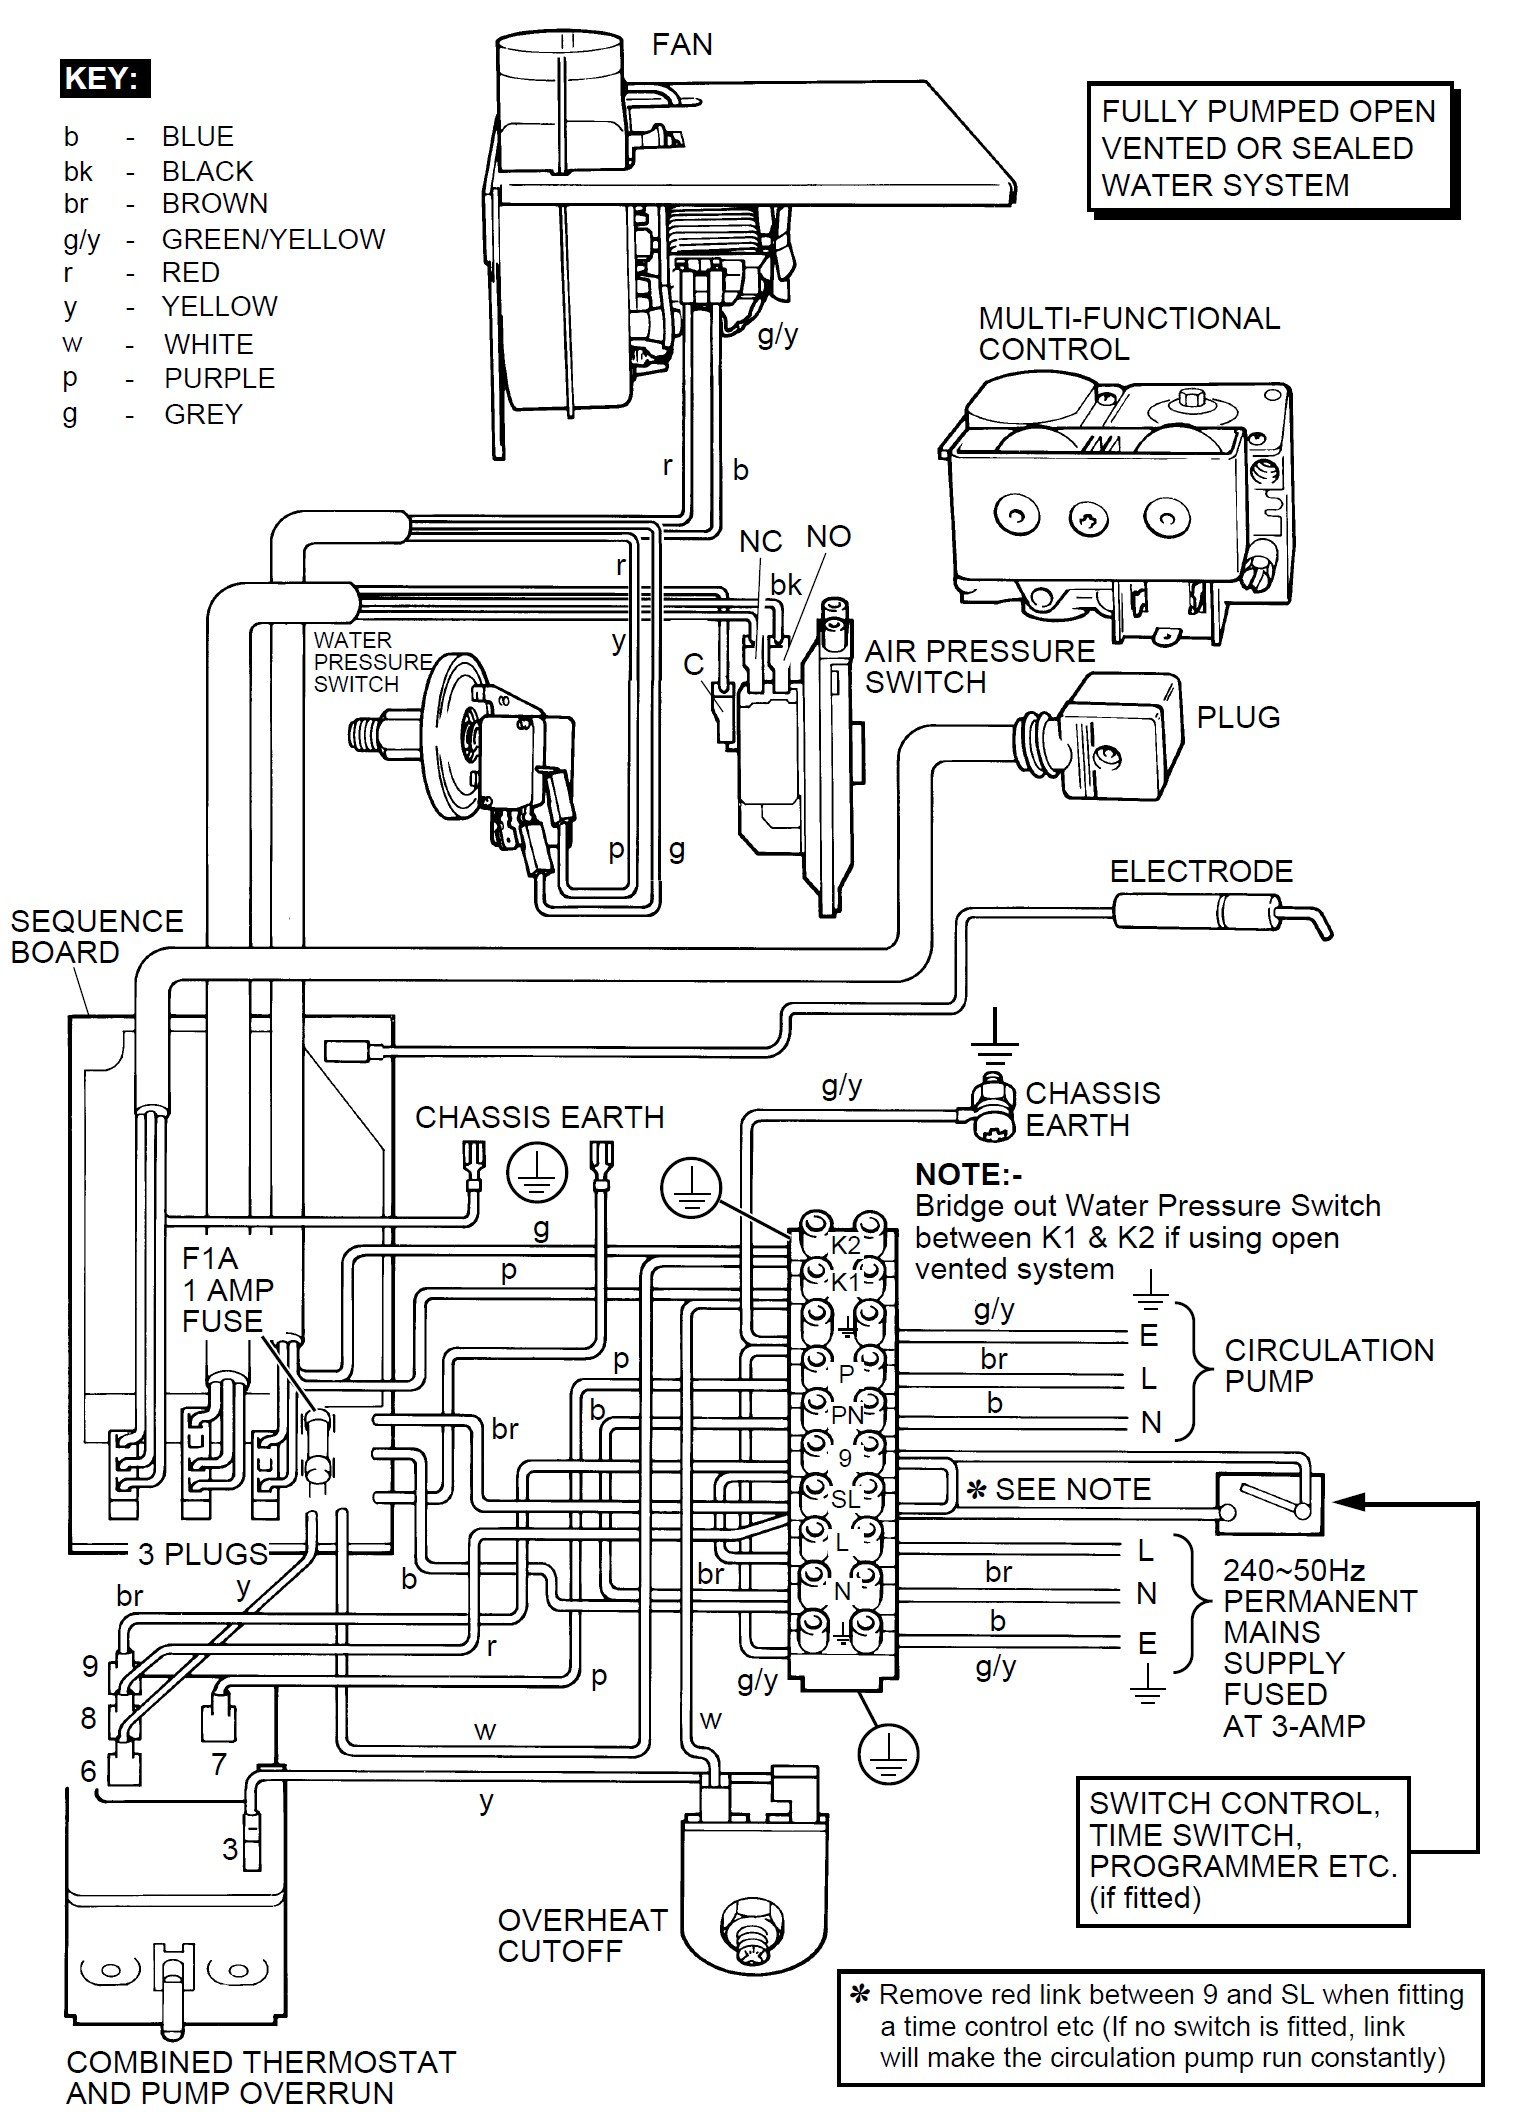 3 thermostat wiring diagram 5 wire periodic tables s plan wiring diagram with pump overrun at gsmx.co